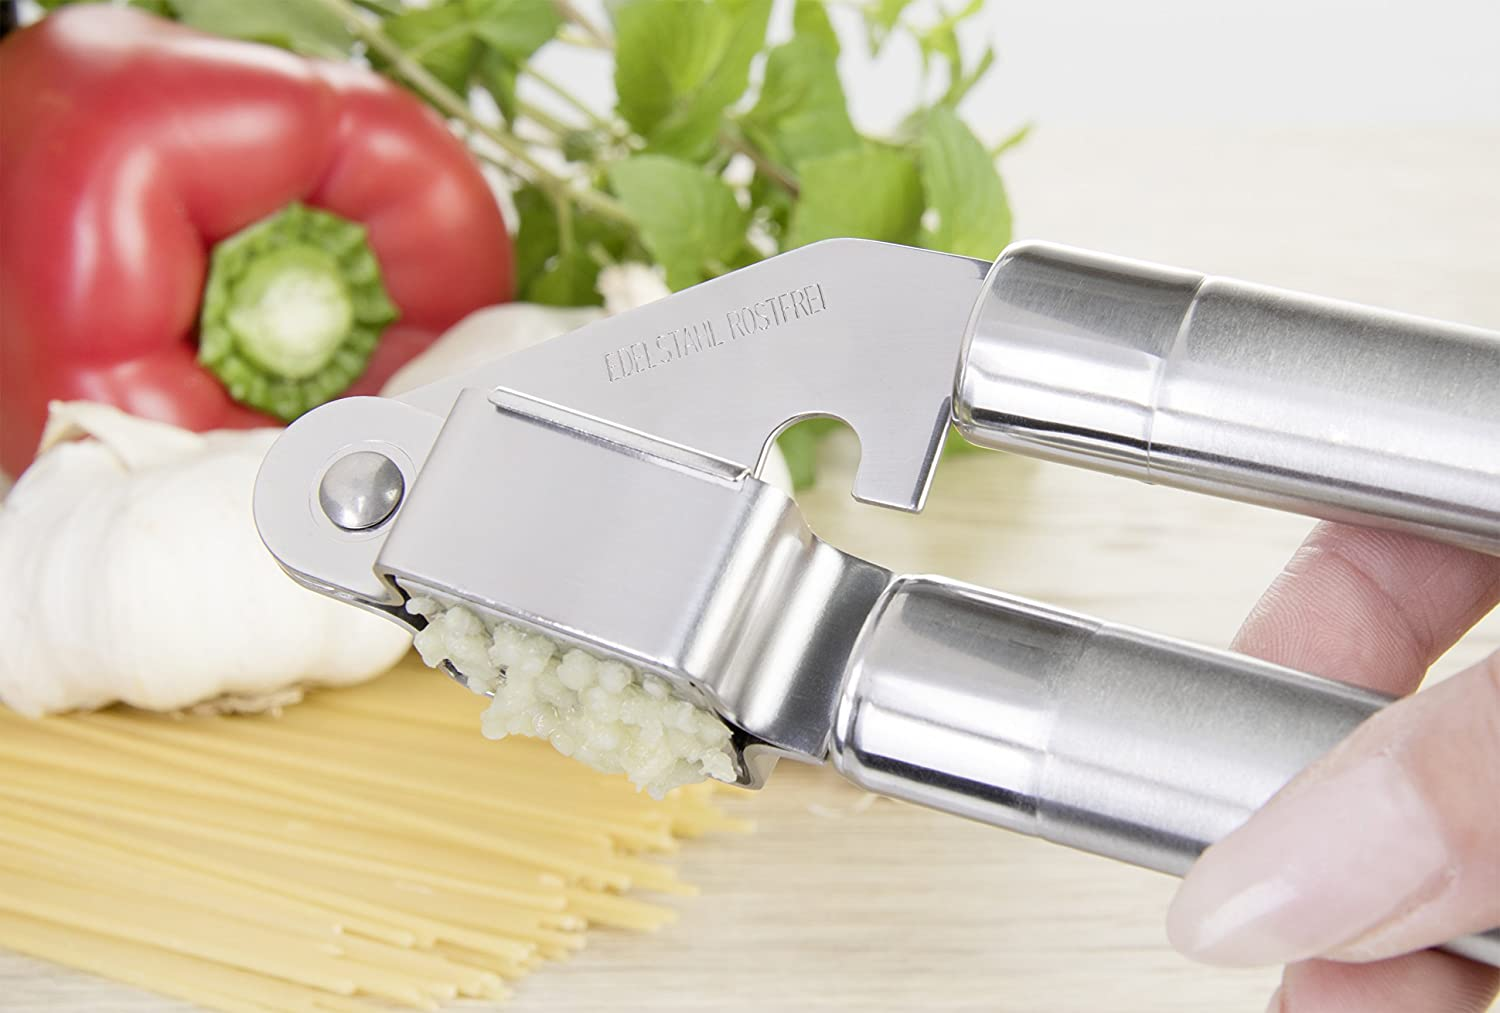 511100 silver length: 18 cm Wenco garlic press with removable grille insert stainless steel